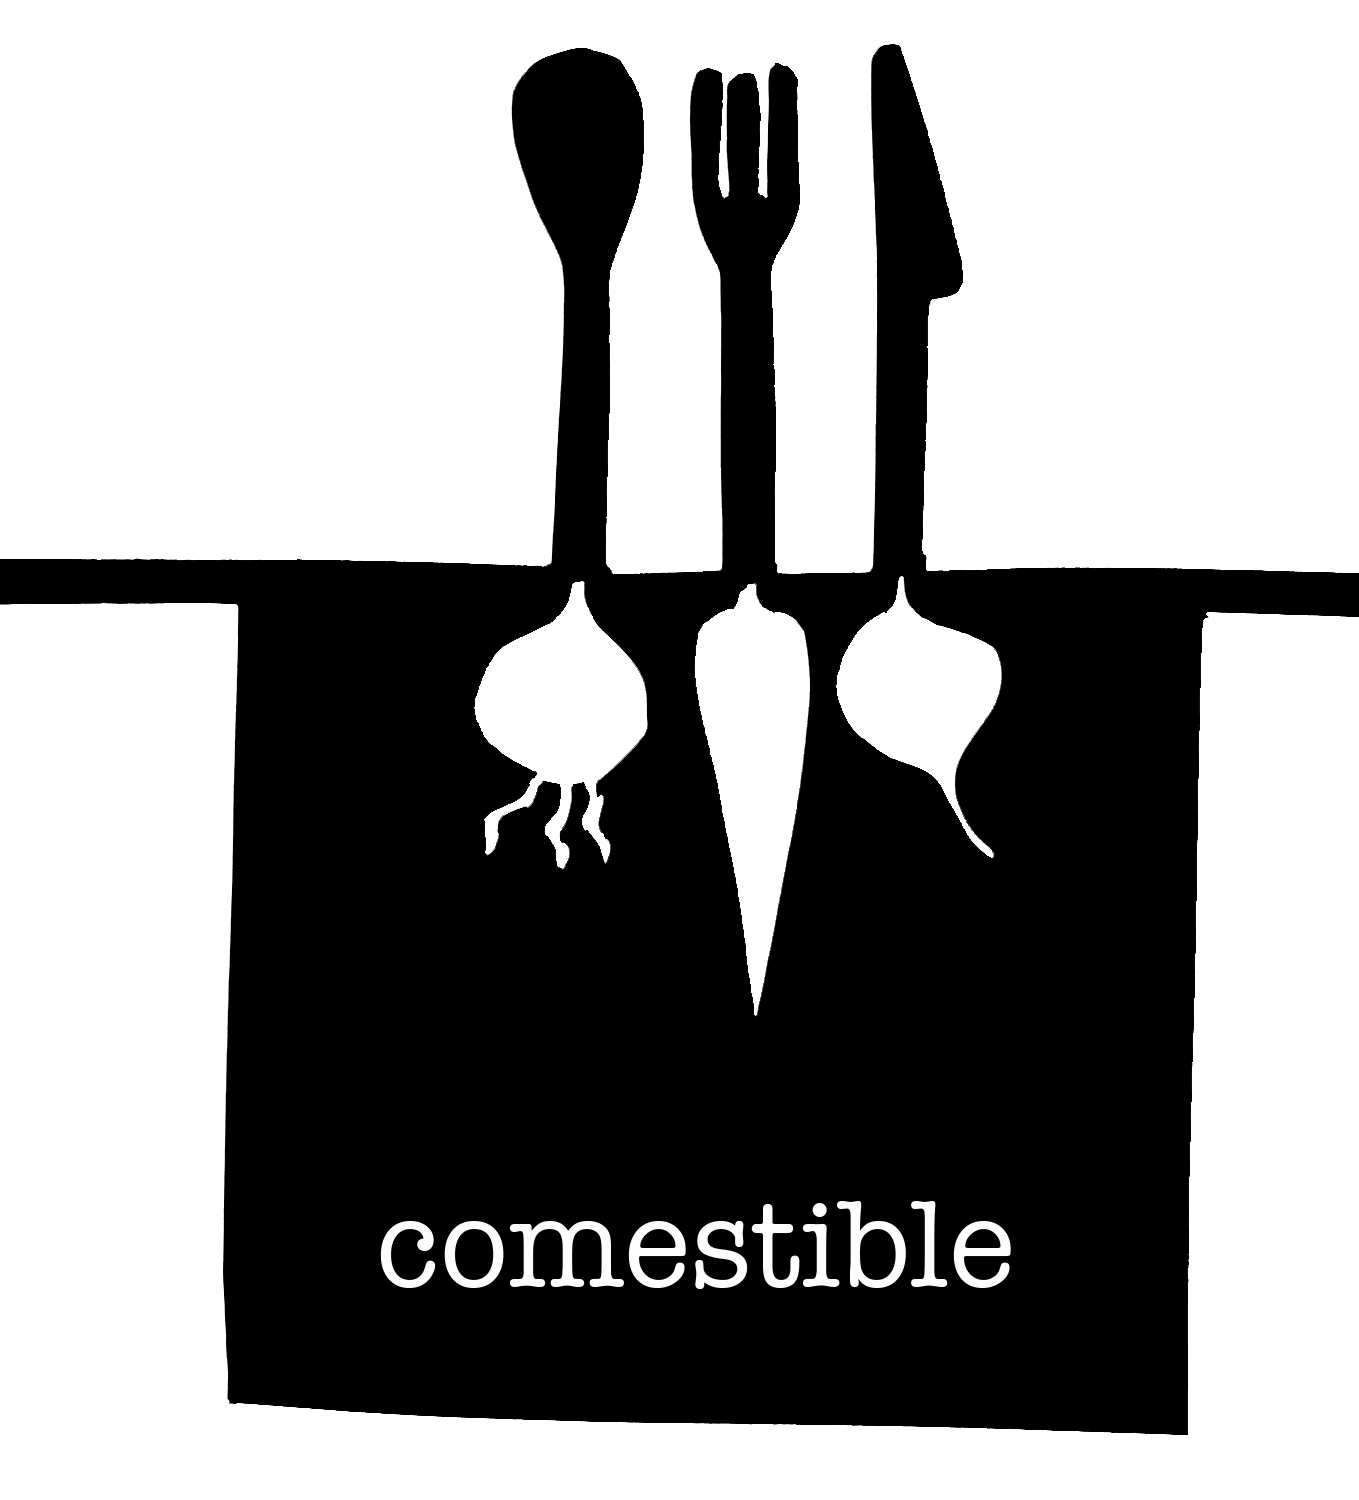 Foodie Underground founder and author Anna Brones is making a new quarterly food journal called Comestible, and I'm just so excited.